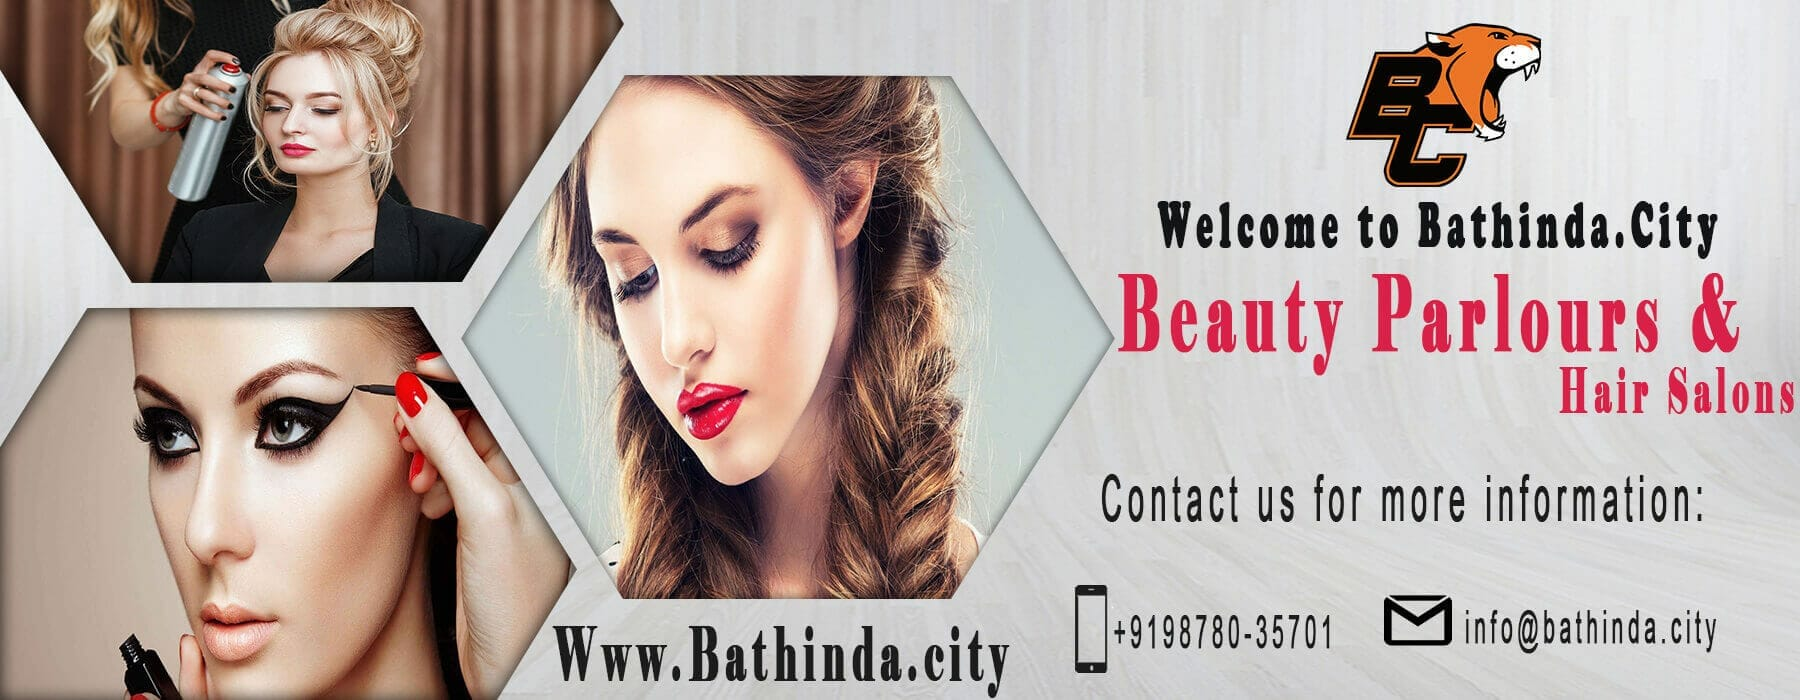 Beauty Parlours  in bathinda